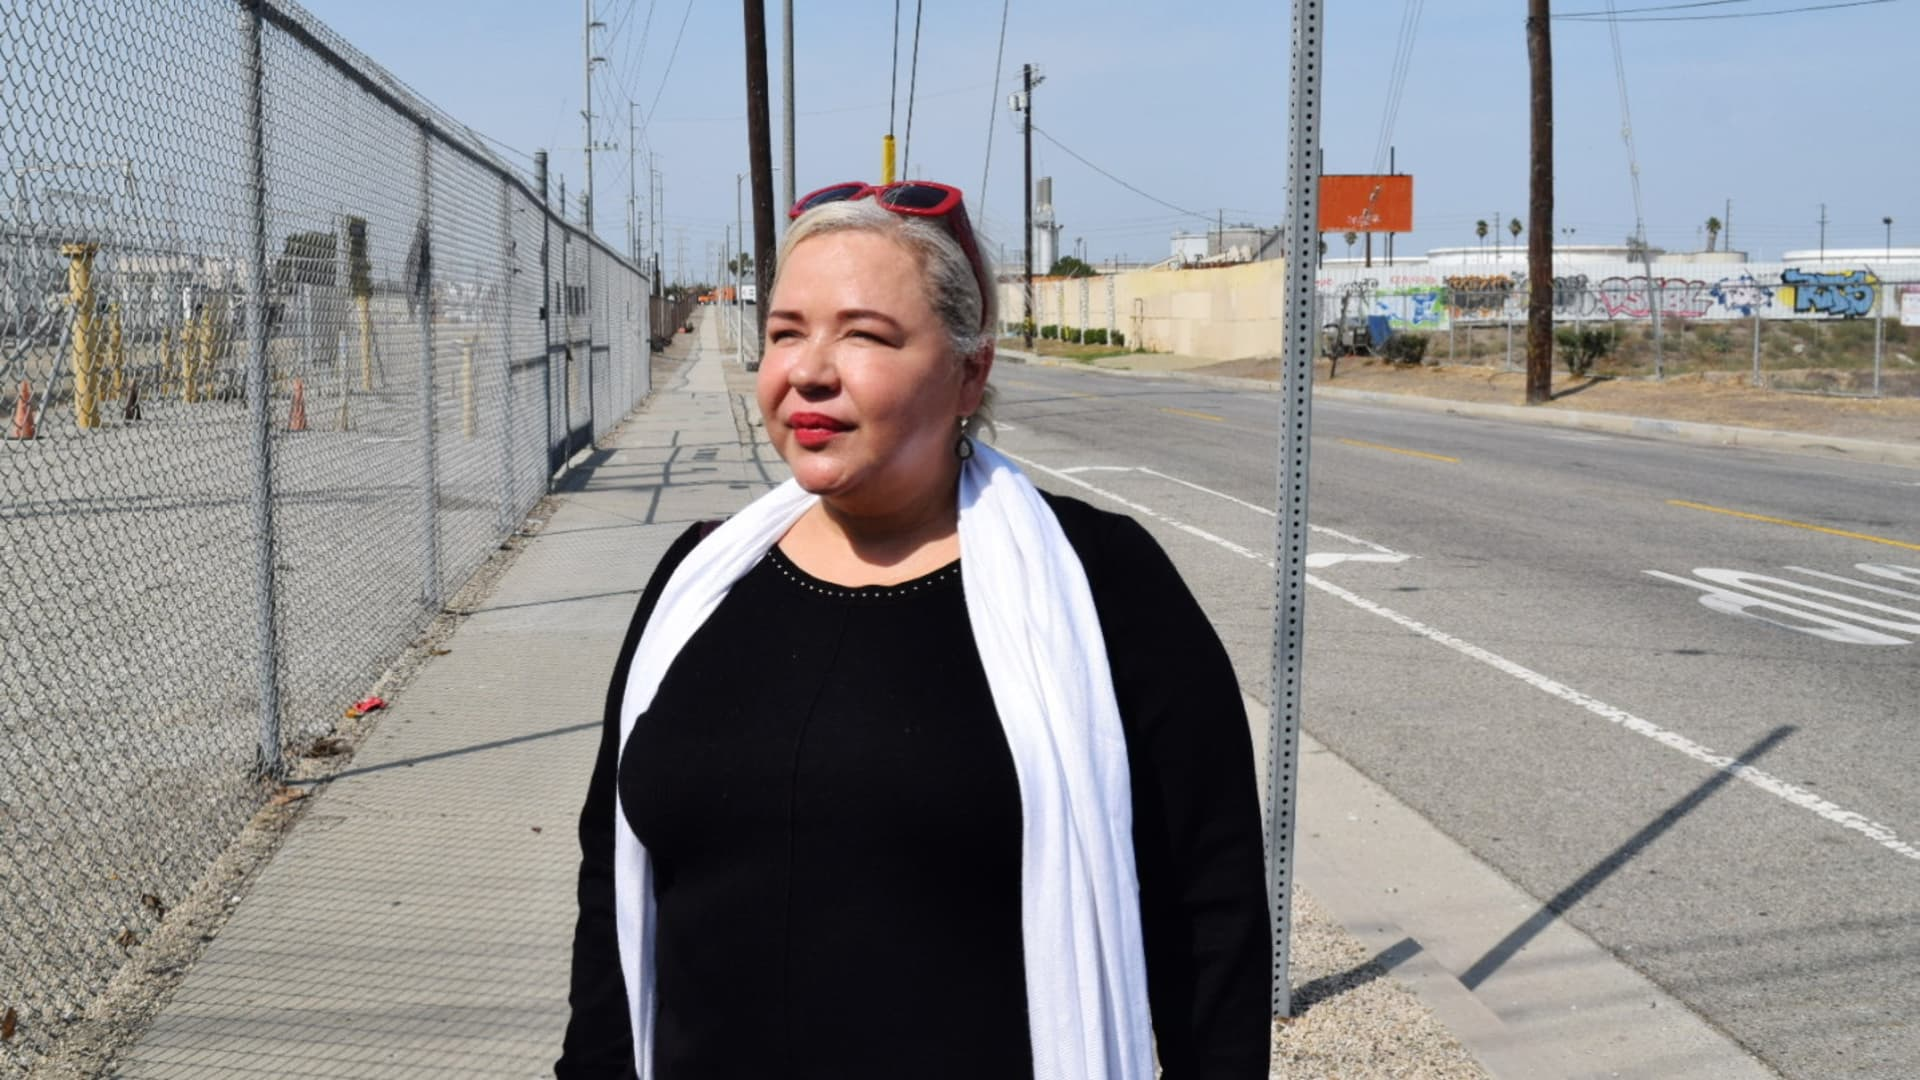 Magali Sanchez-Hall, a Wilmington resident for over two decades, has struggled with asthma her entire life. She says the health issue stems from her proximity to oil and gas drilling.